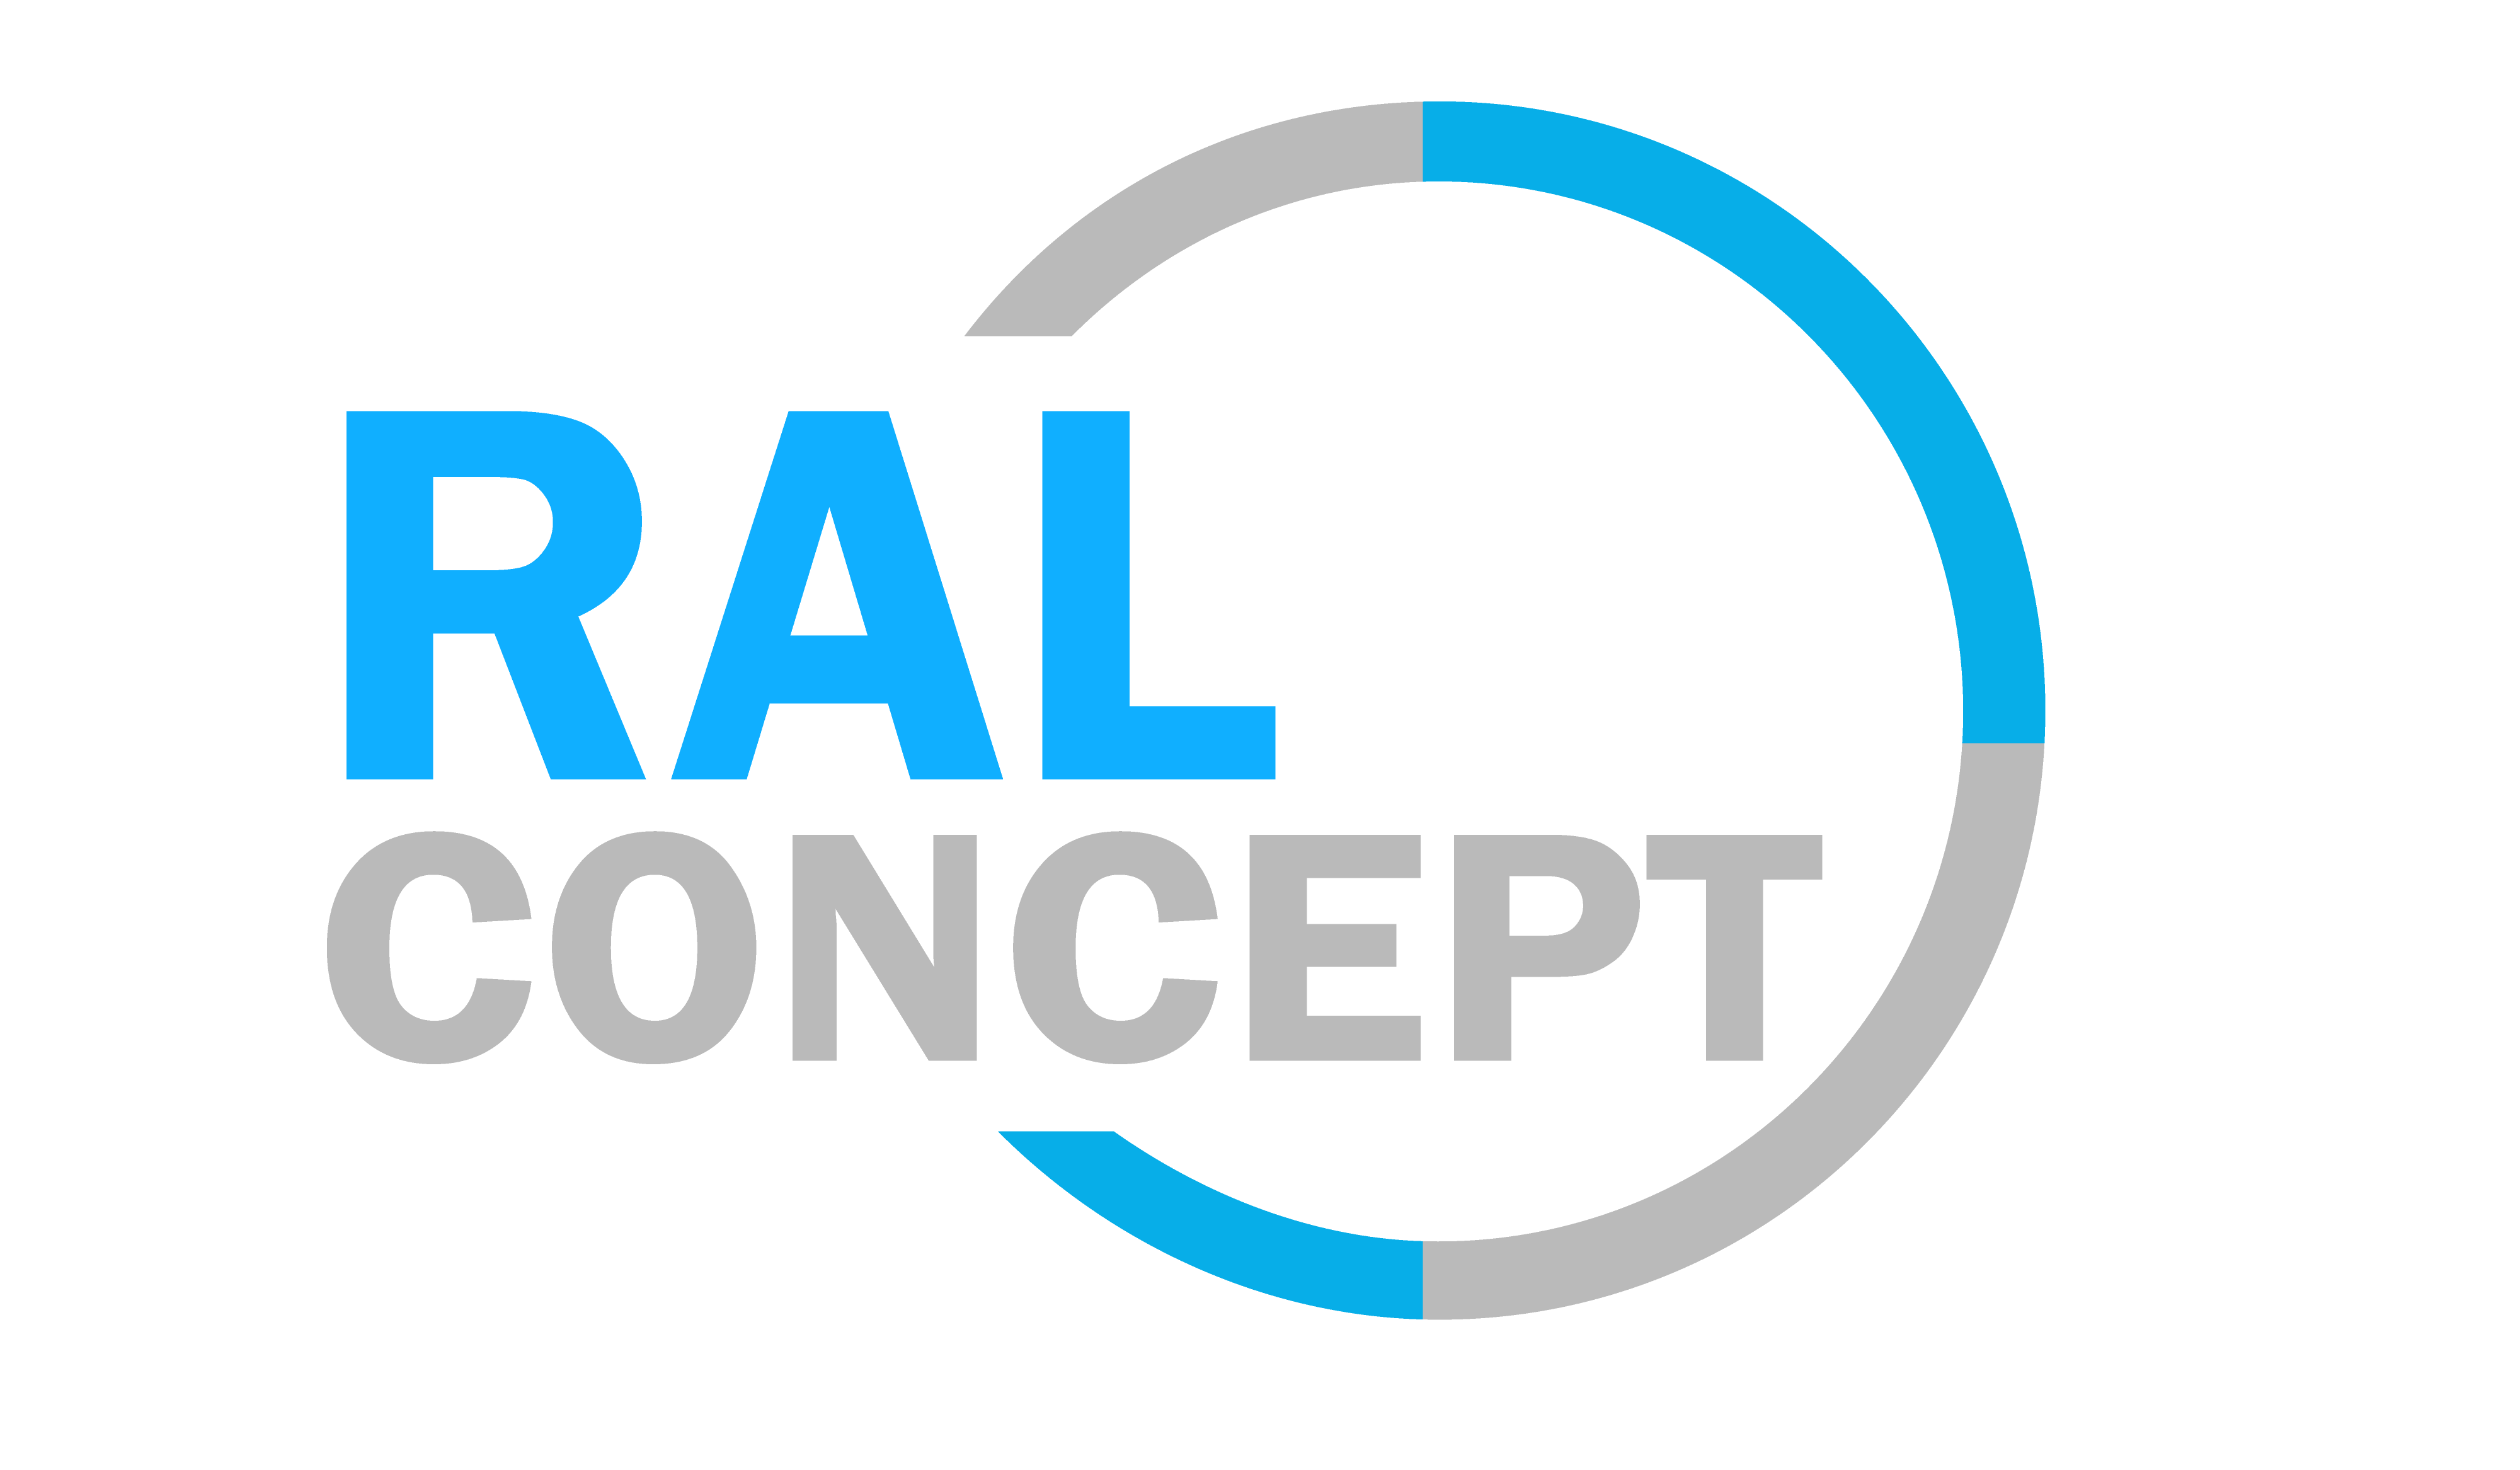 ral_concept_01052018